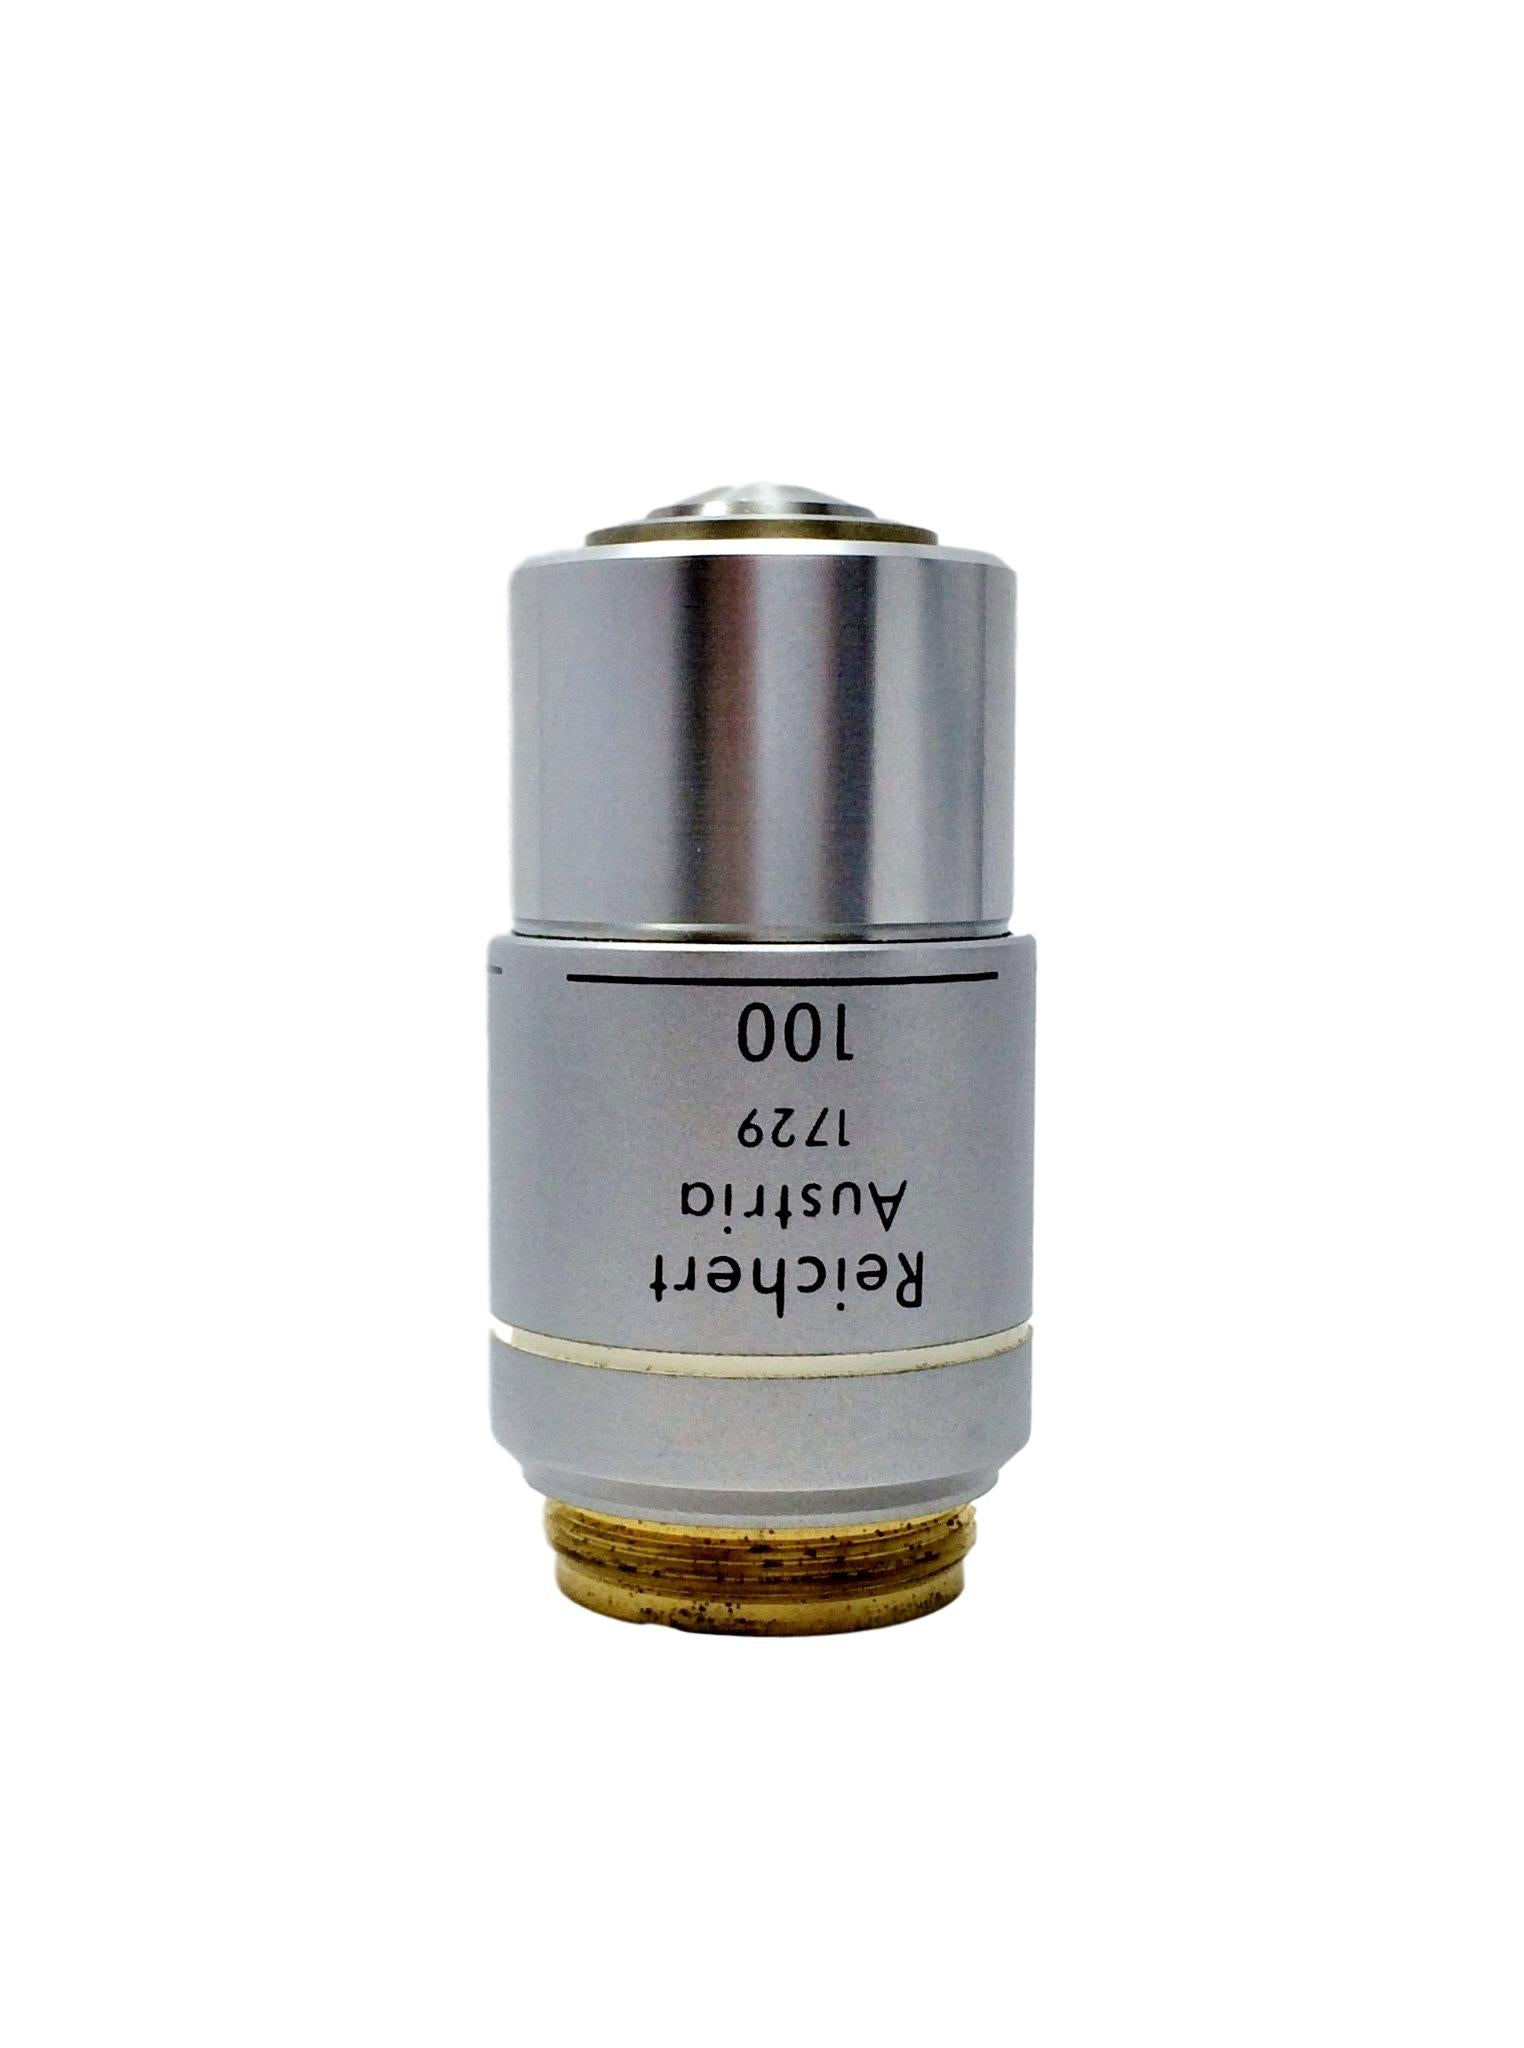 Reichert Plan Fluorite 100X Oil Microscope Objective